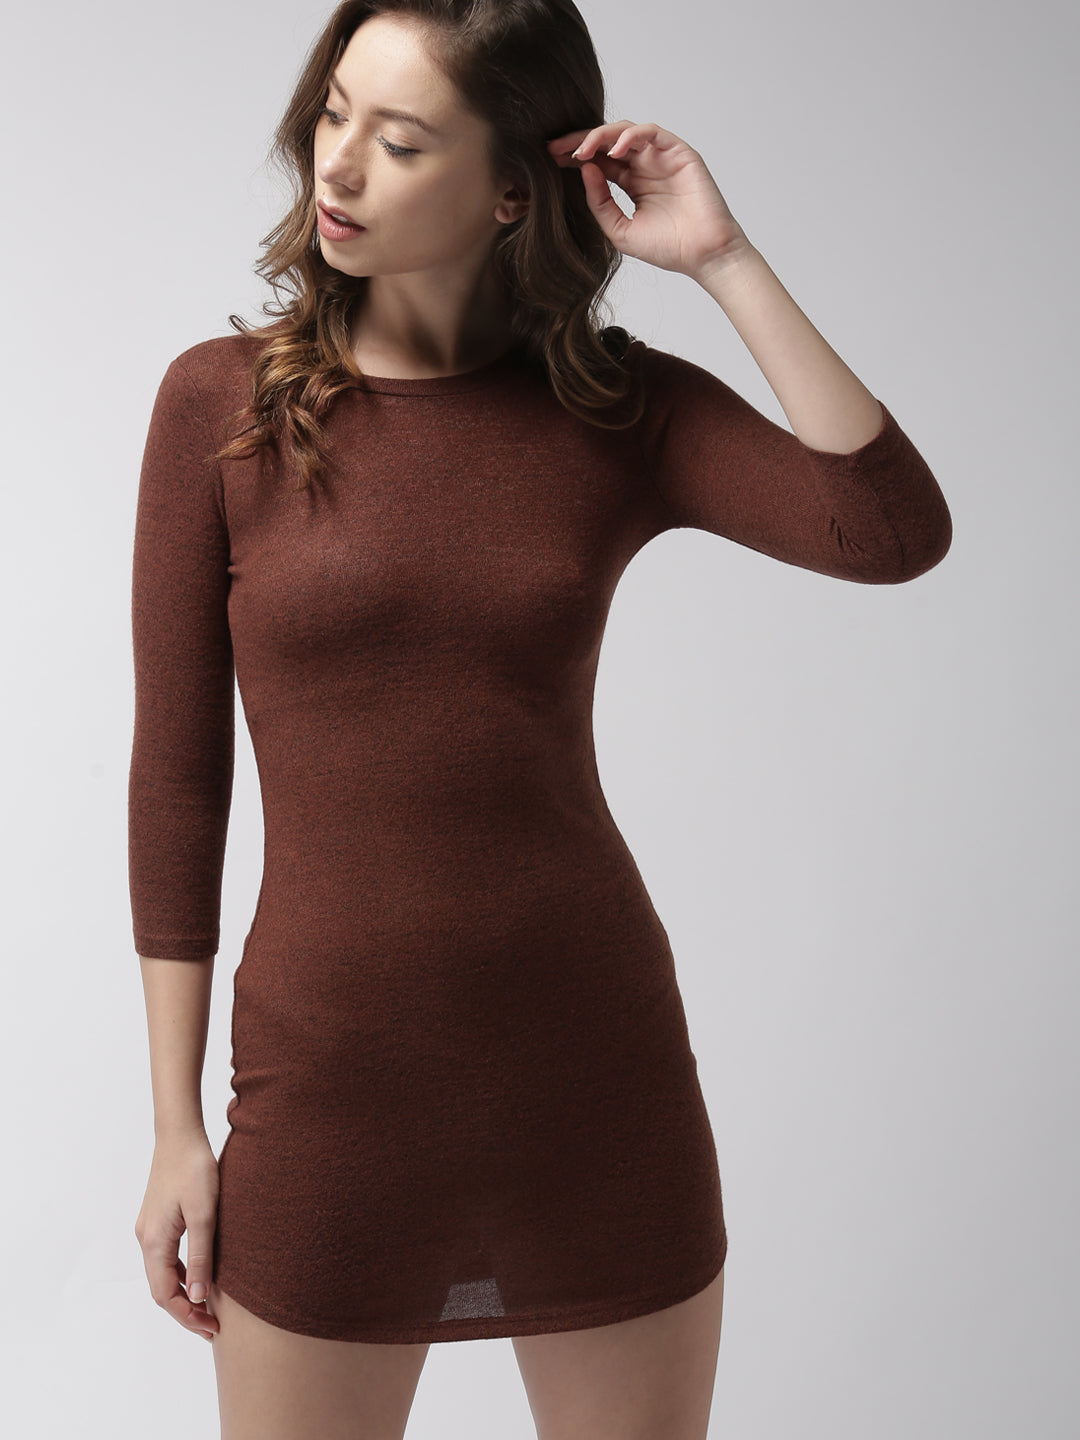 Brown Solid Bodycon Dress